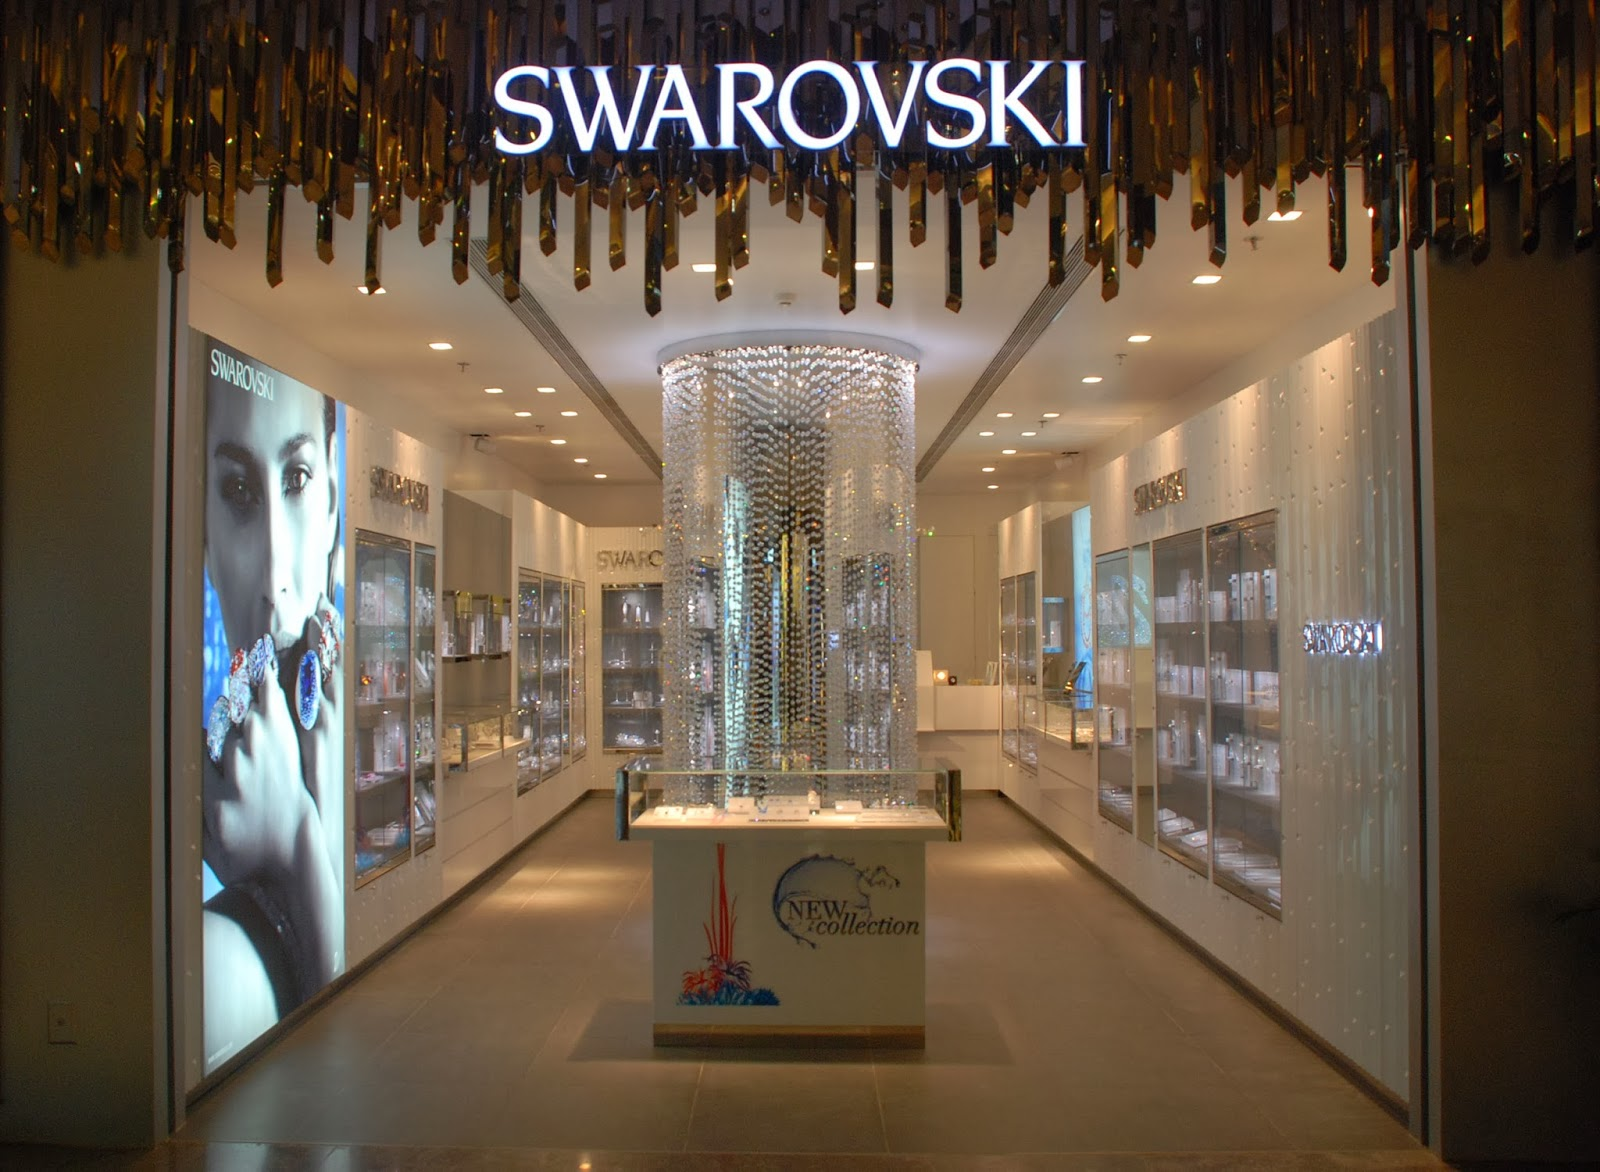 06af3d55b56c Shining Discounts at Swarovki outlet!